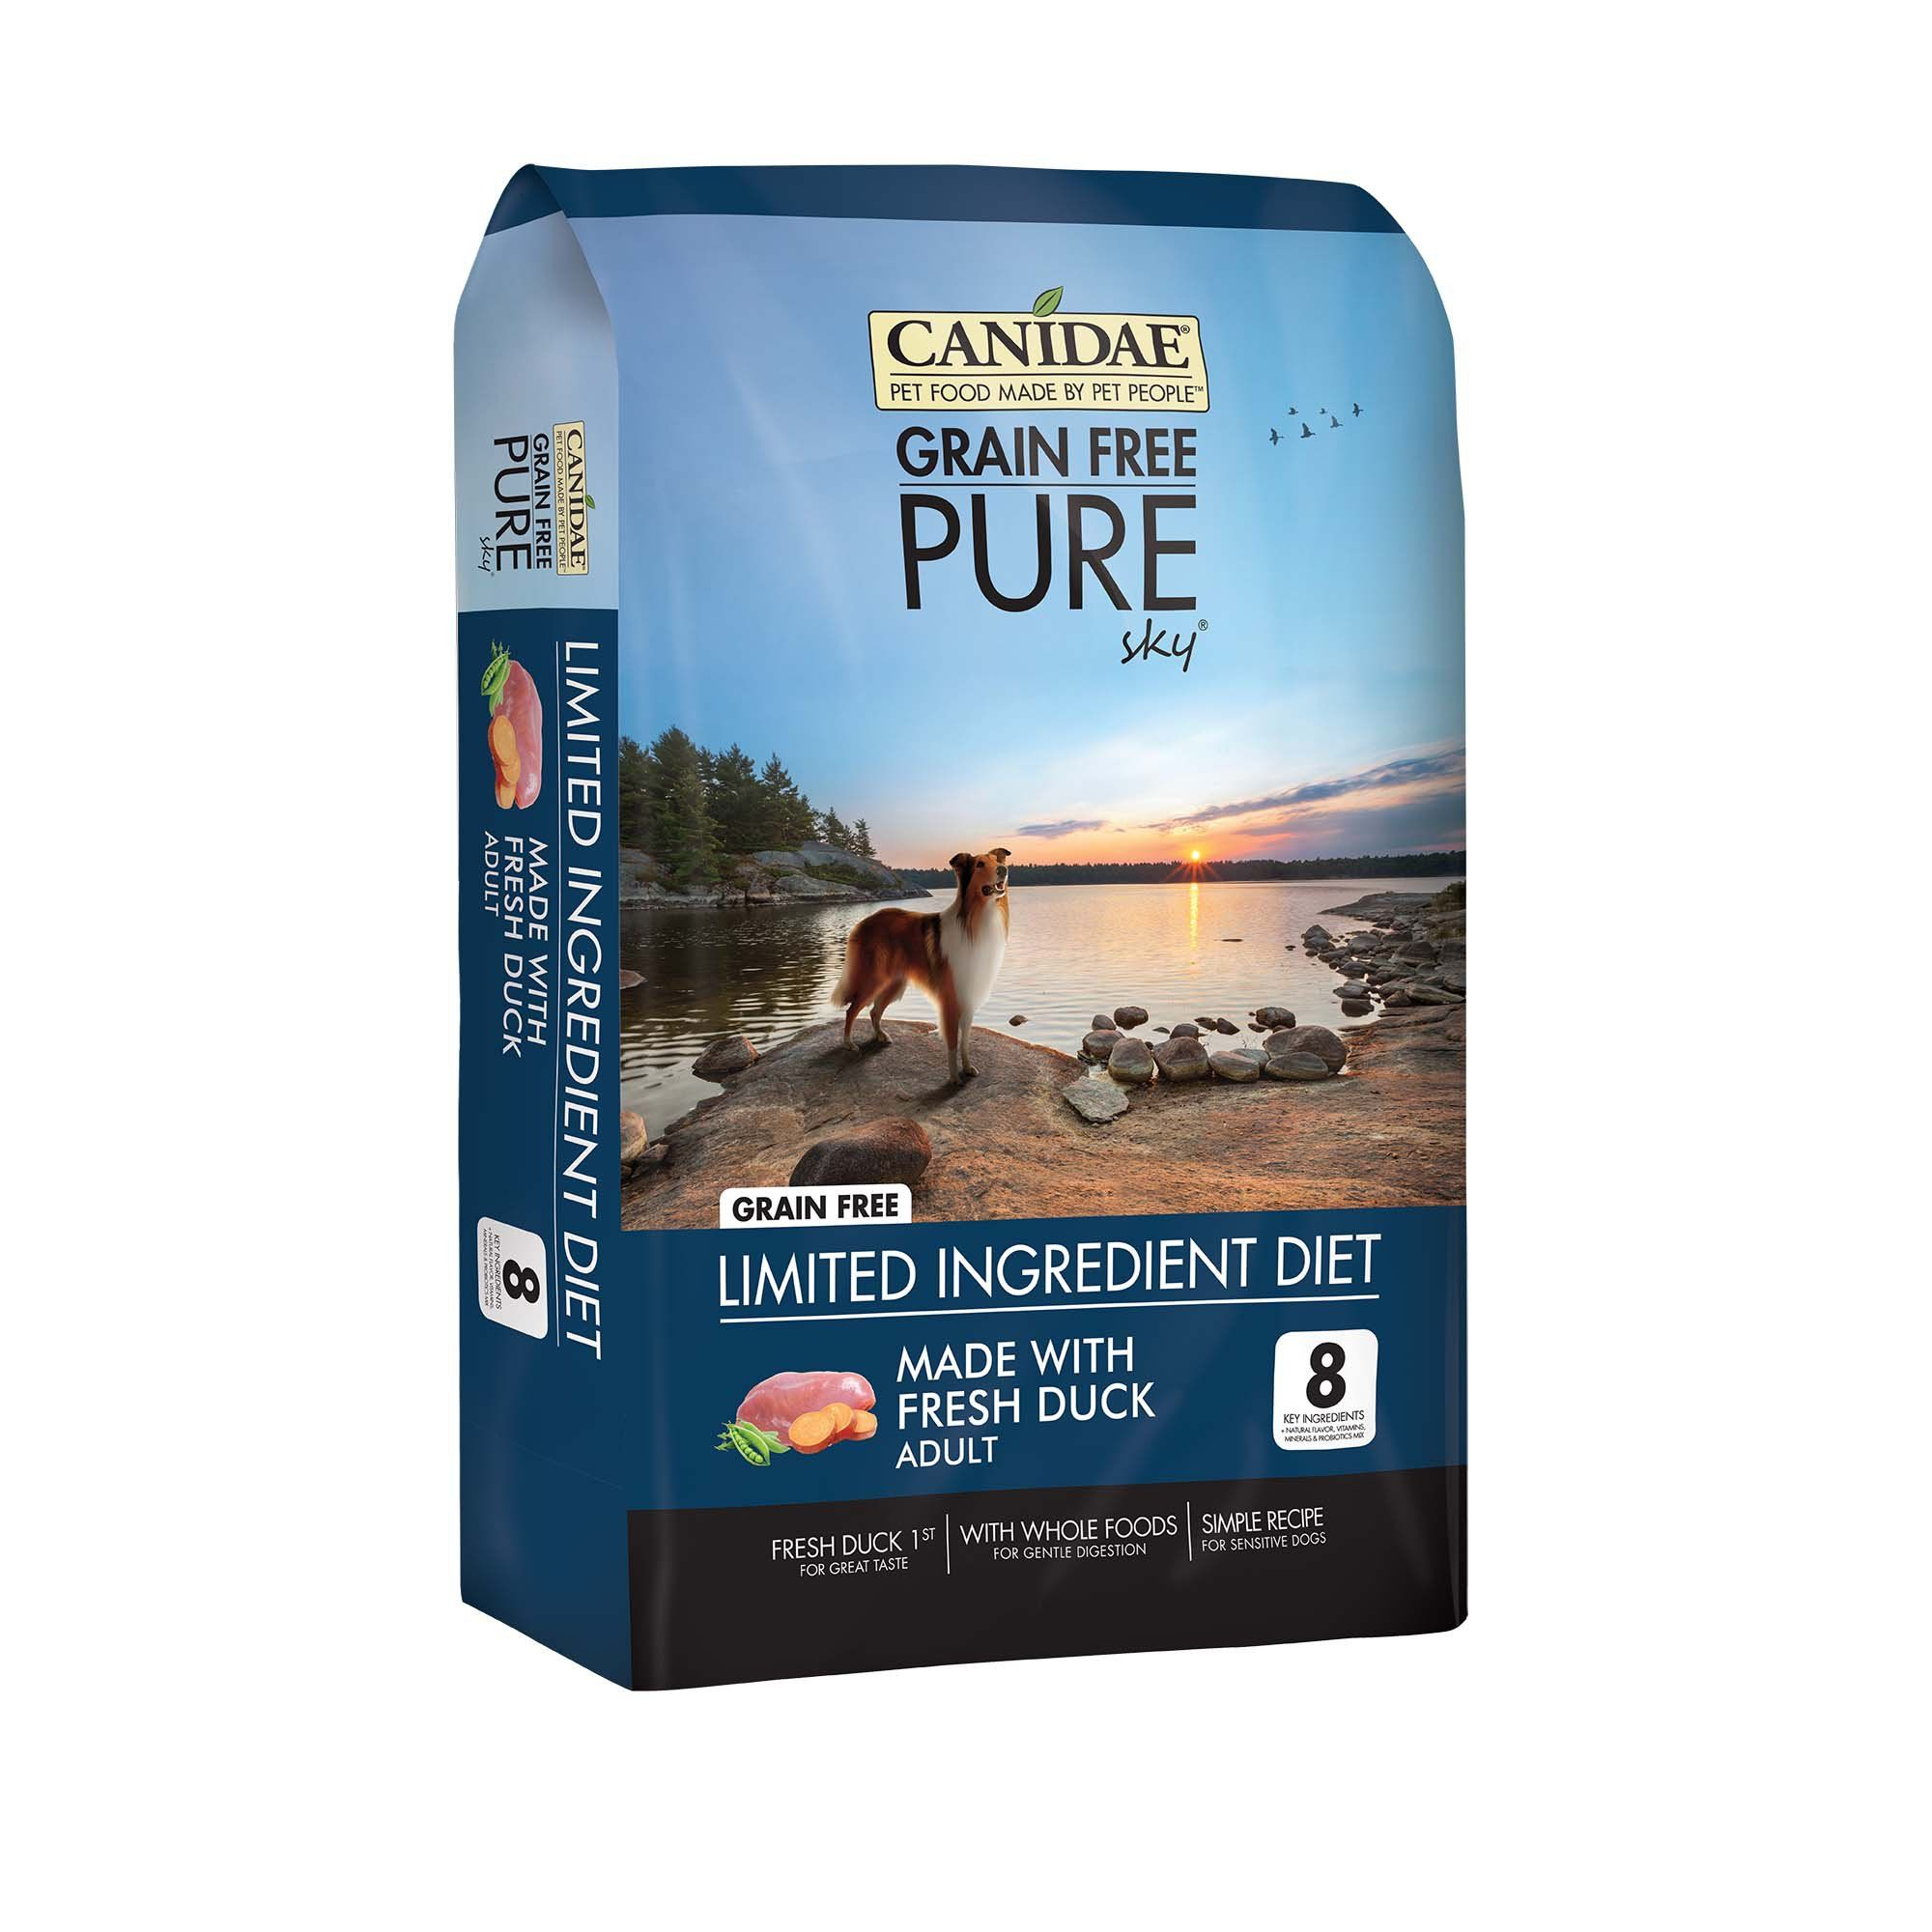 Canidae pure grain free limited ingredient real duck